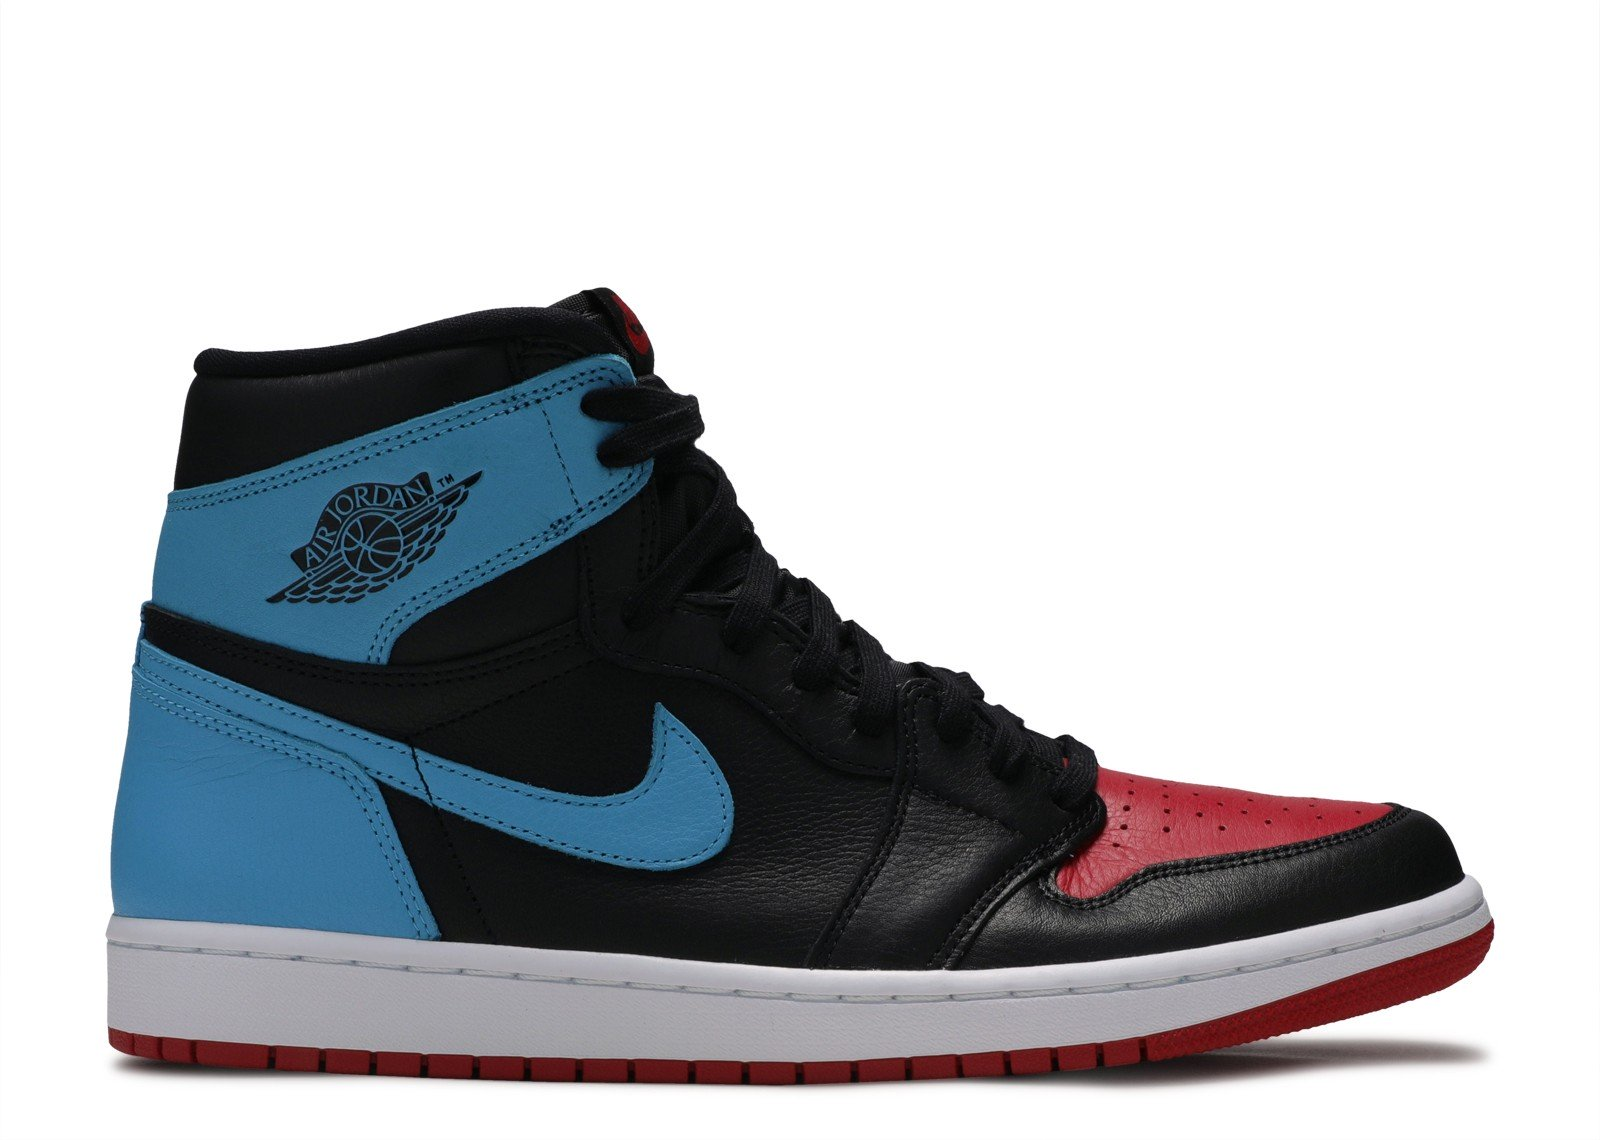 Jordan 1 Retro High NC to Chi Leather - CookiesandKicksLA